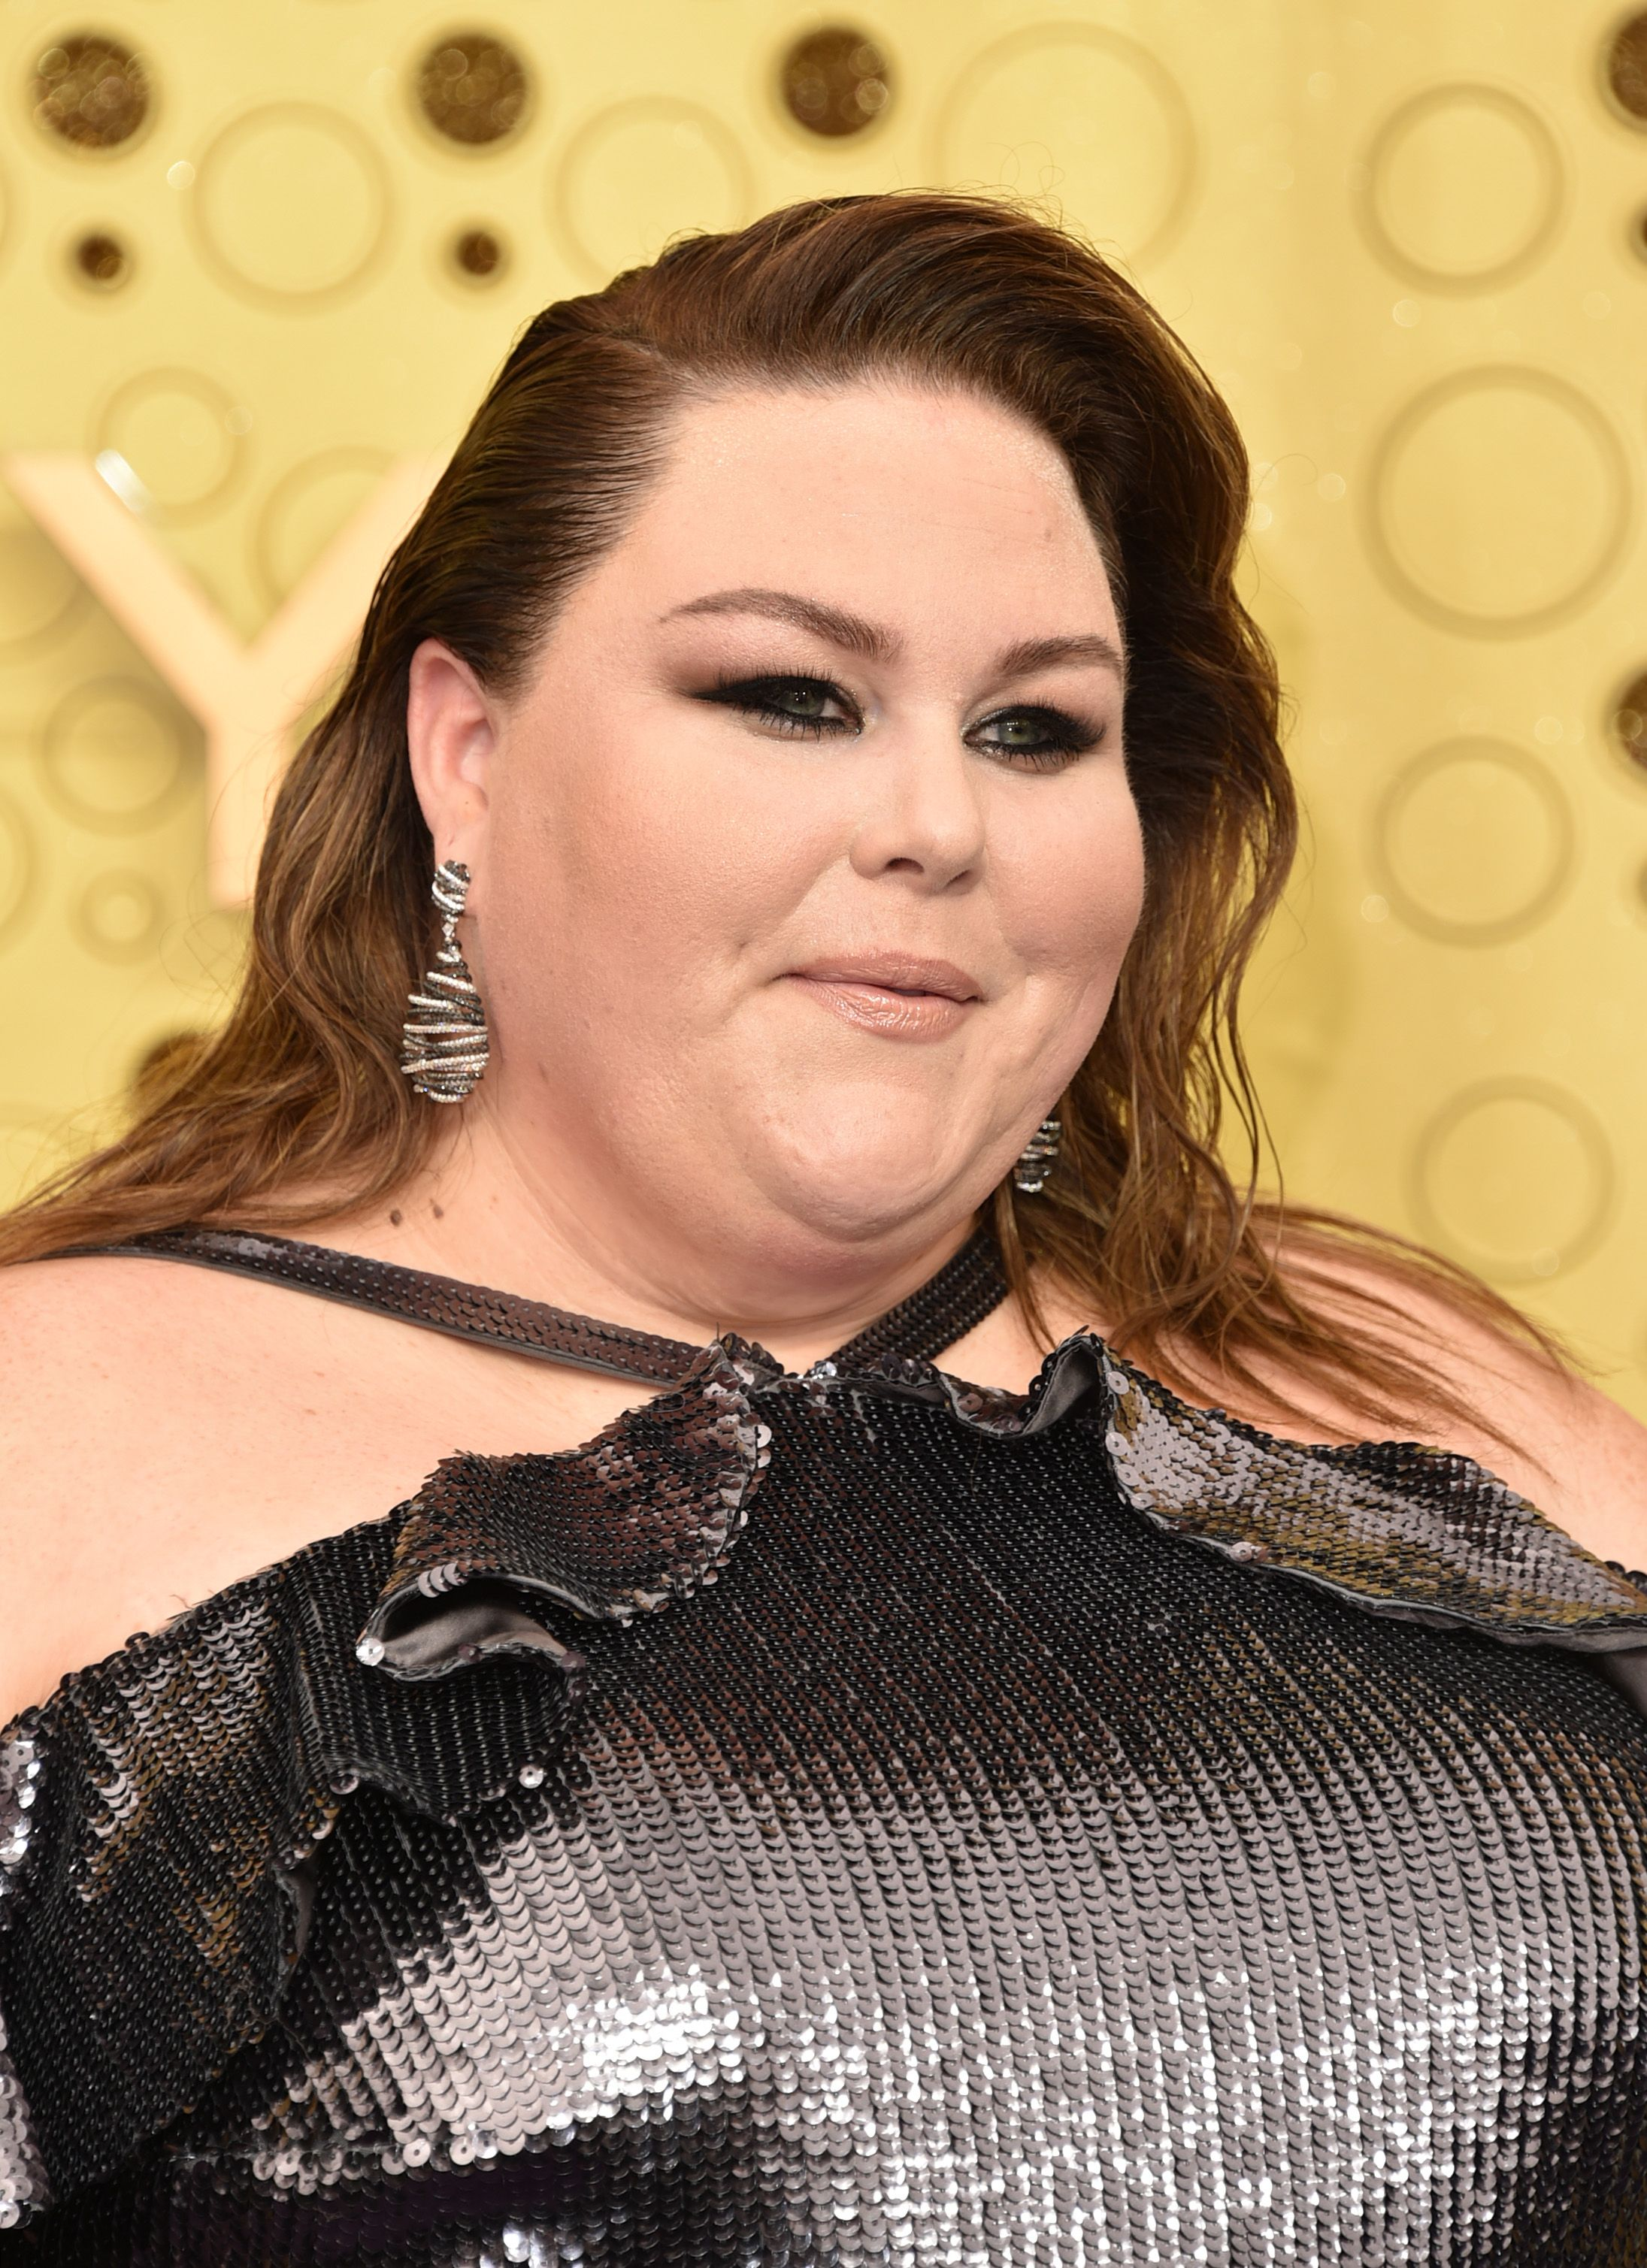 Chrissy Metz Wears a Silver Sequin Dress to the 2019 Emmys